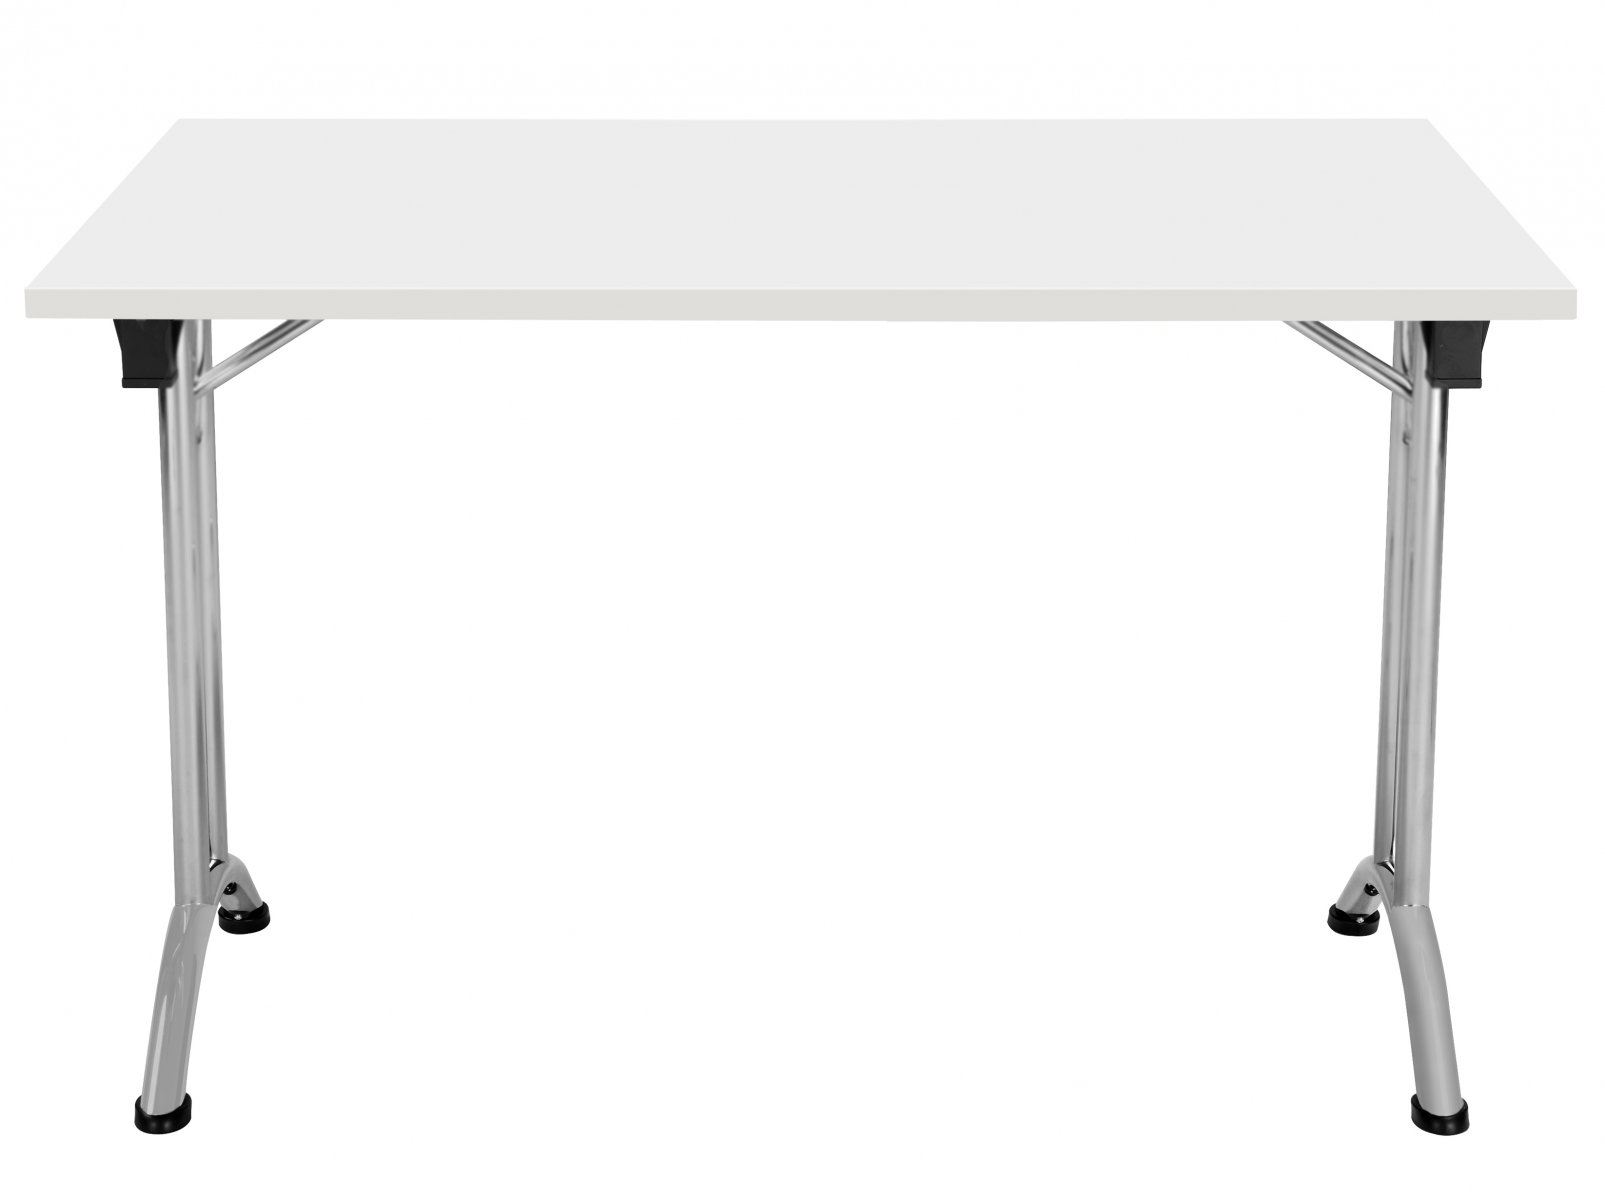 Union Rectangular 120 x 80 Folding Meeting Table - White with Silver Frame